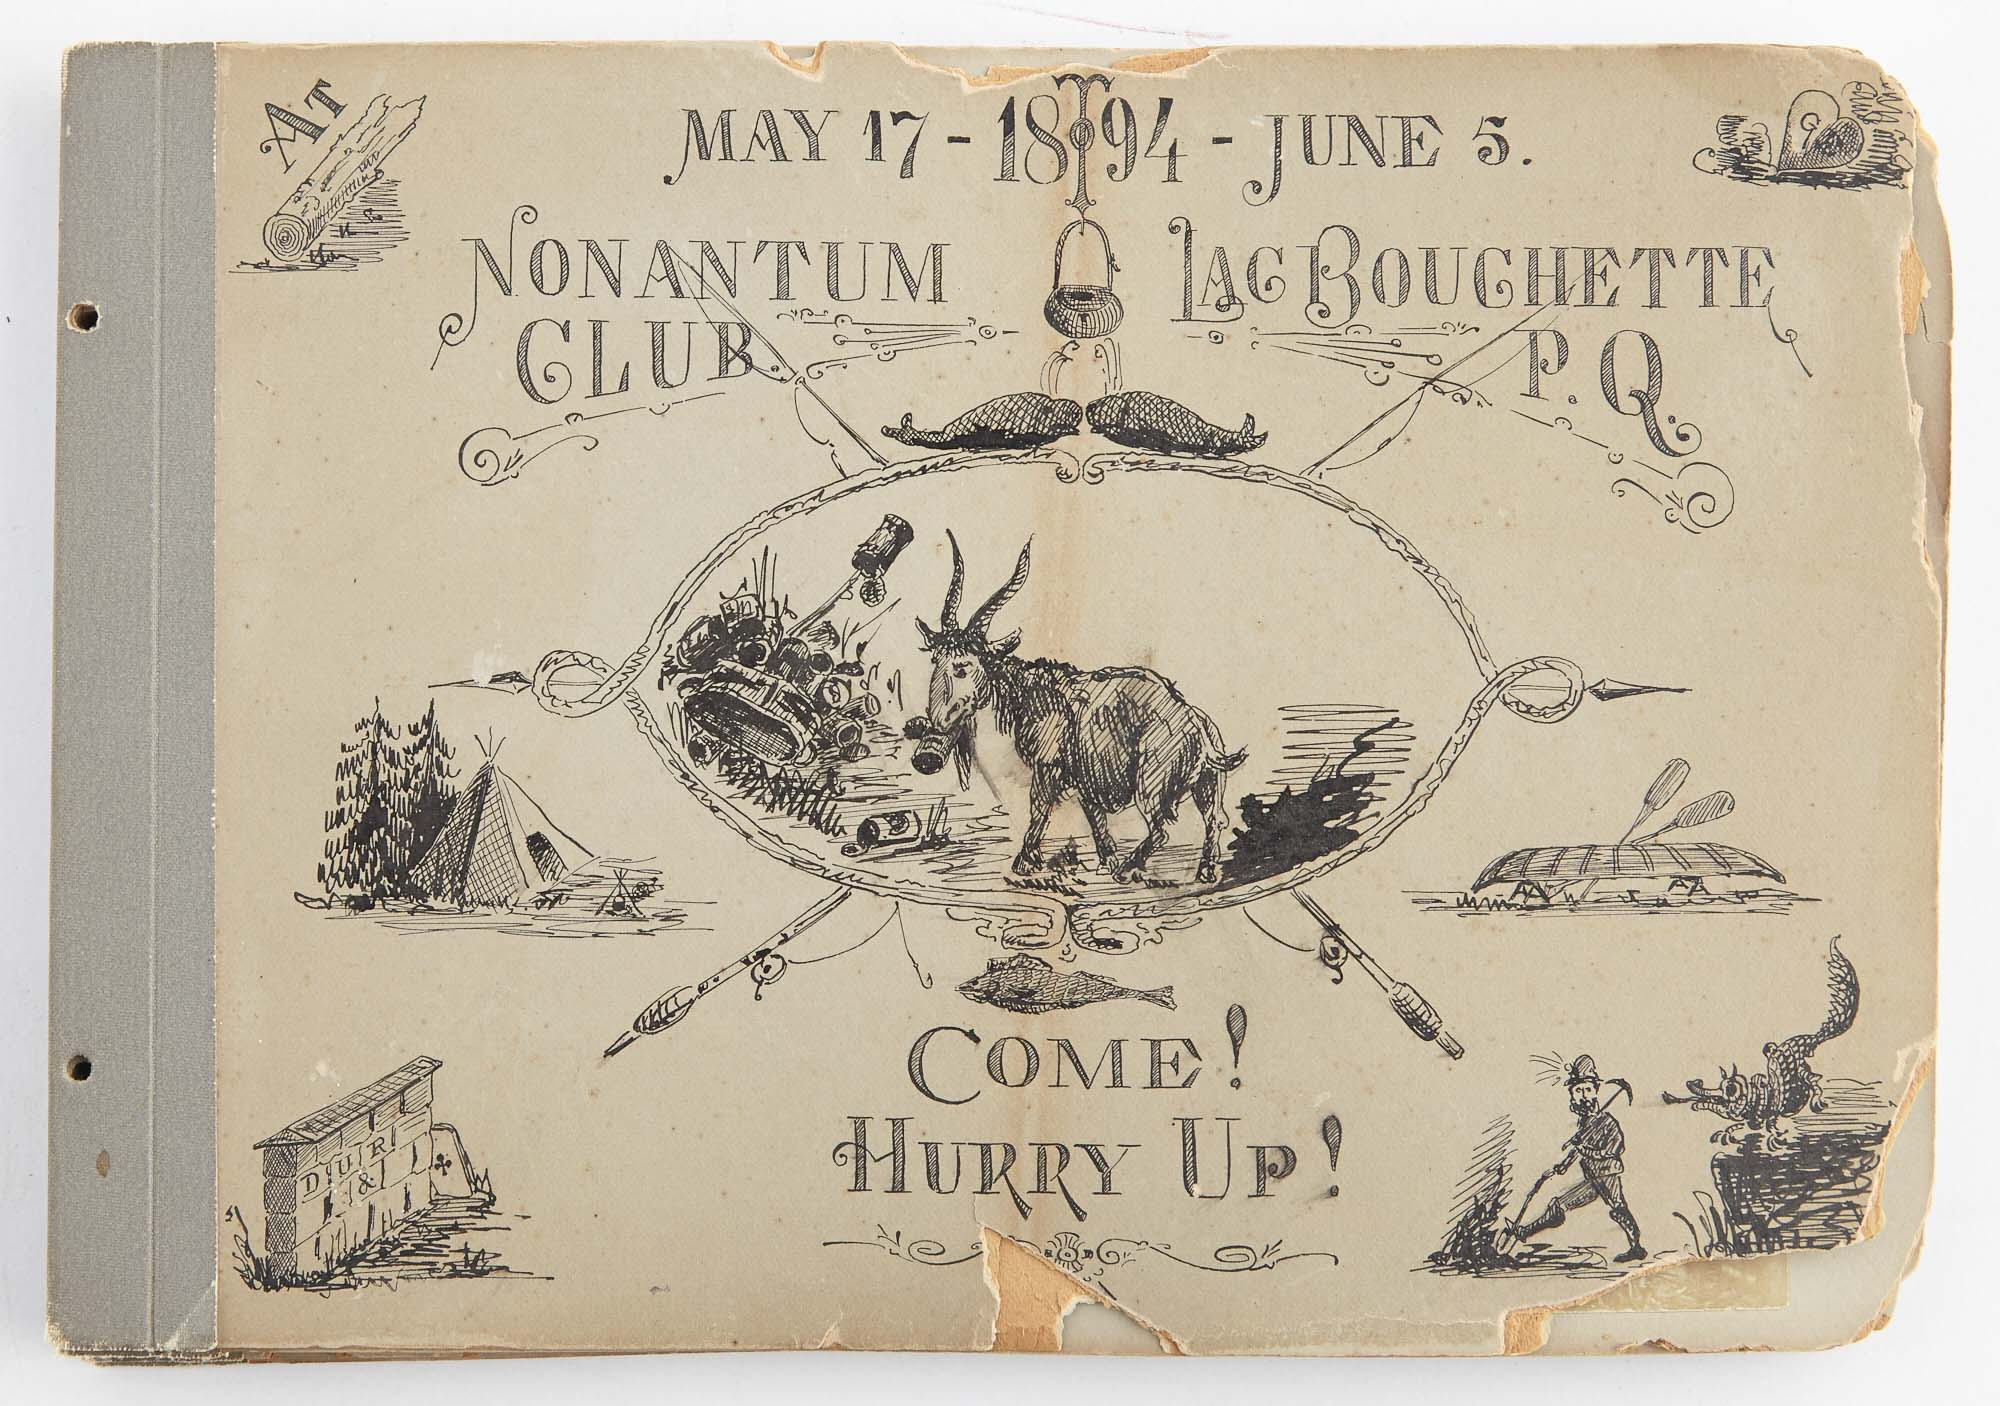 Lot image - [ANGLING CLUB]  May 17 - June 5 1894. Nonantum Club, Lac Bouchette P. Q. Come! Hurry Up!